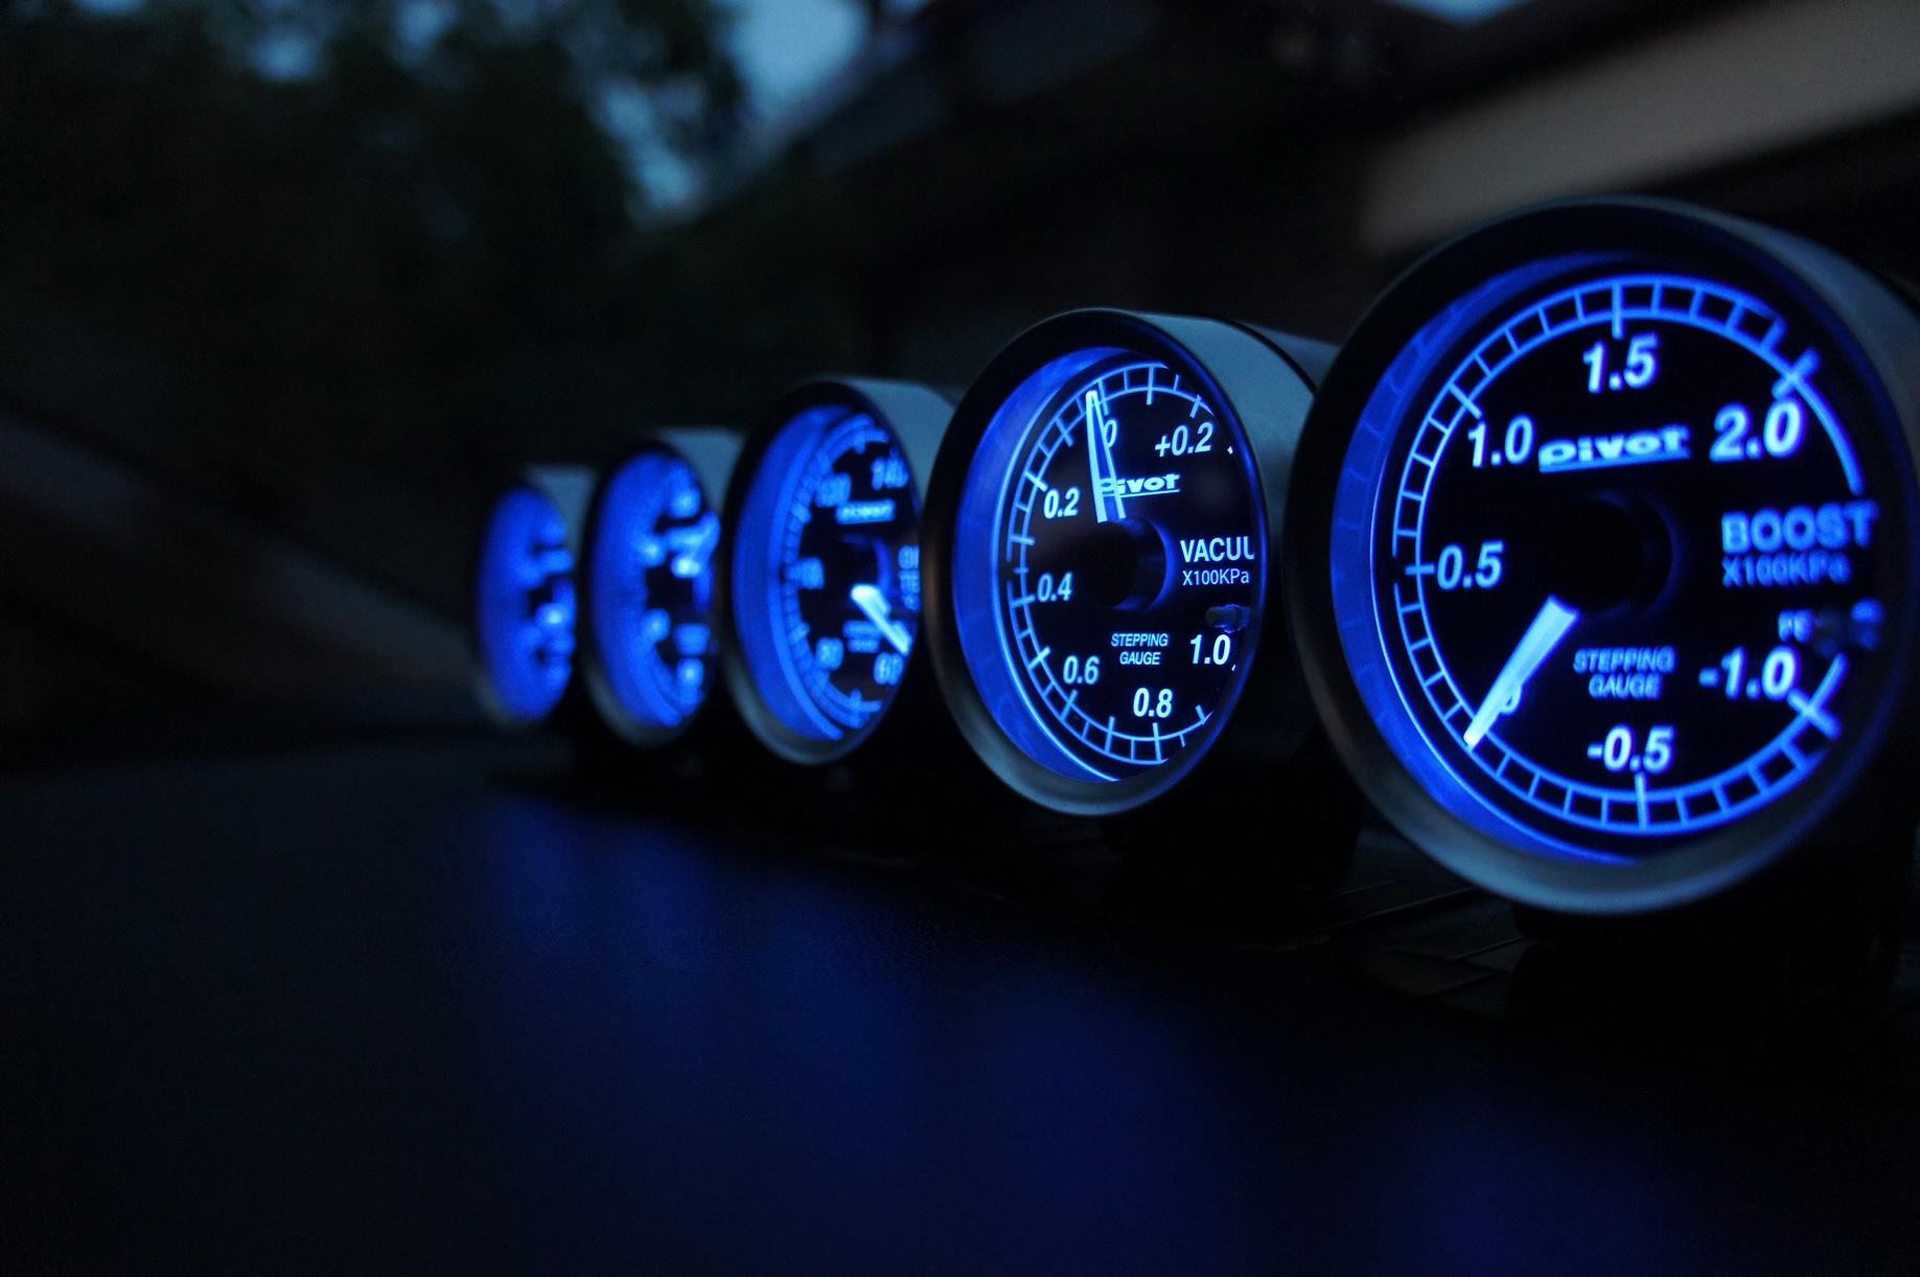 10 Speedometer HD Wallpapers | Backgrounds - Wallpaper Abyss